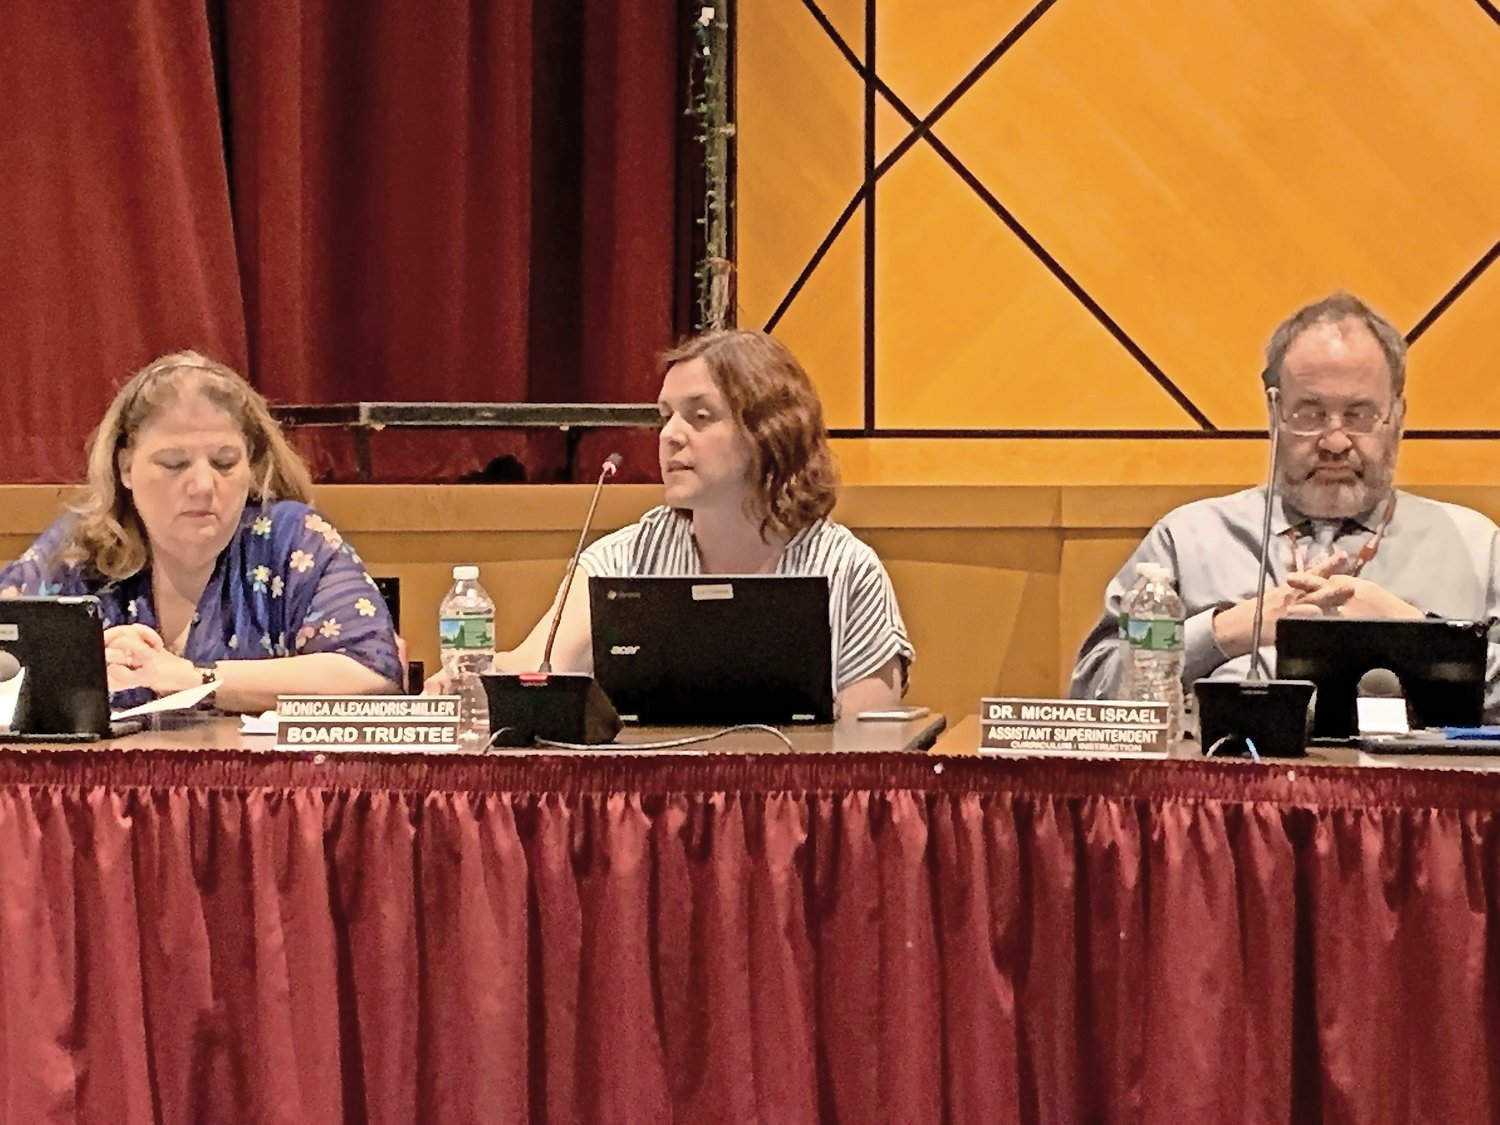 Trustee Mary Murphy and Dr. Michael Israel, an assistant superintendent, listened as Trustee Monica Alexandris-Miller, center, stressed that the bond needs to be crafted now.